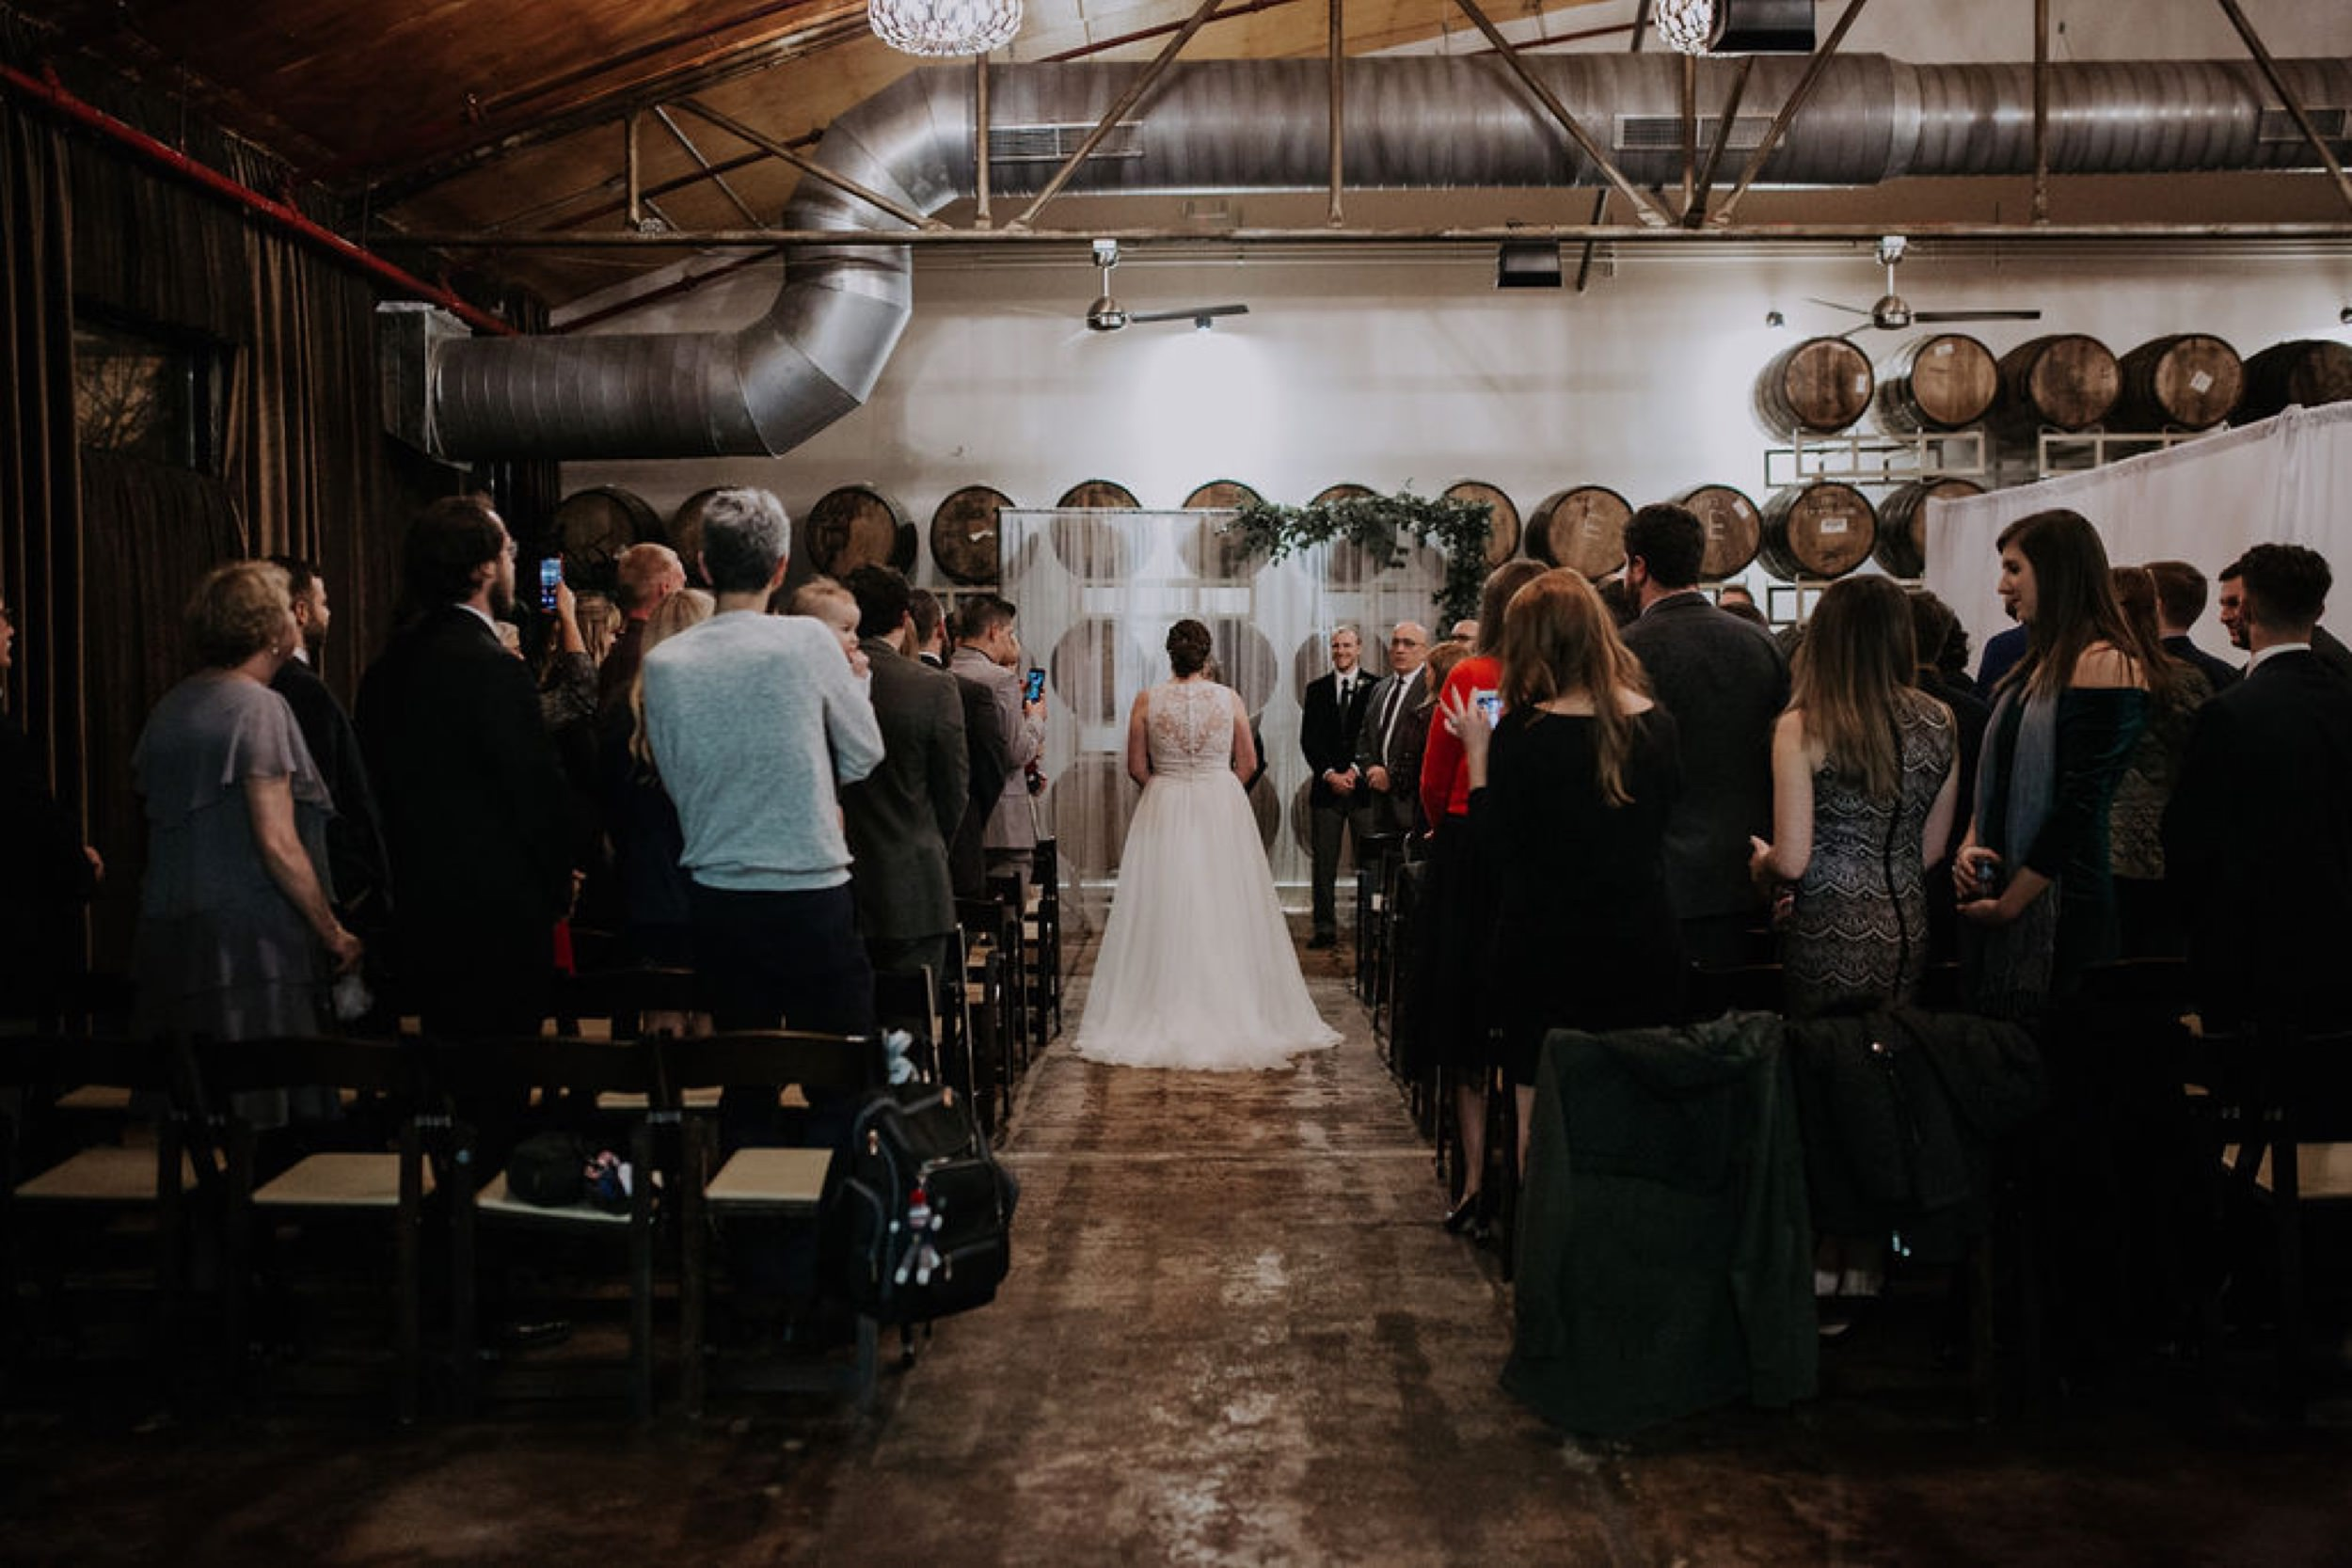 Wedding Ceremony at The Barrel Room